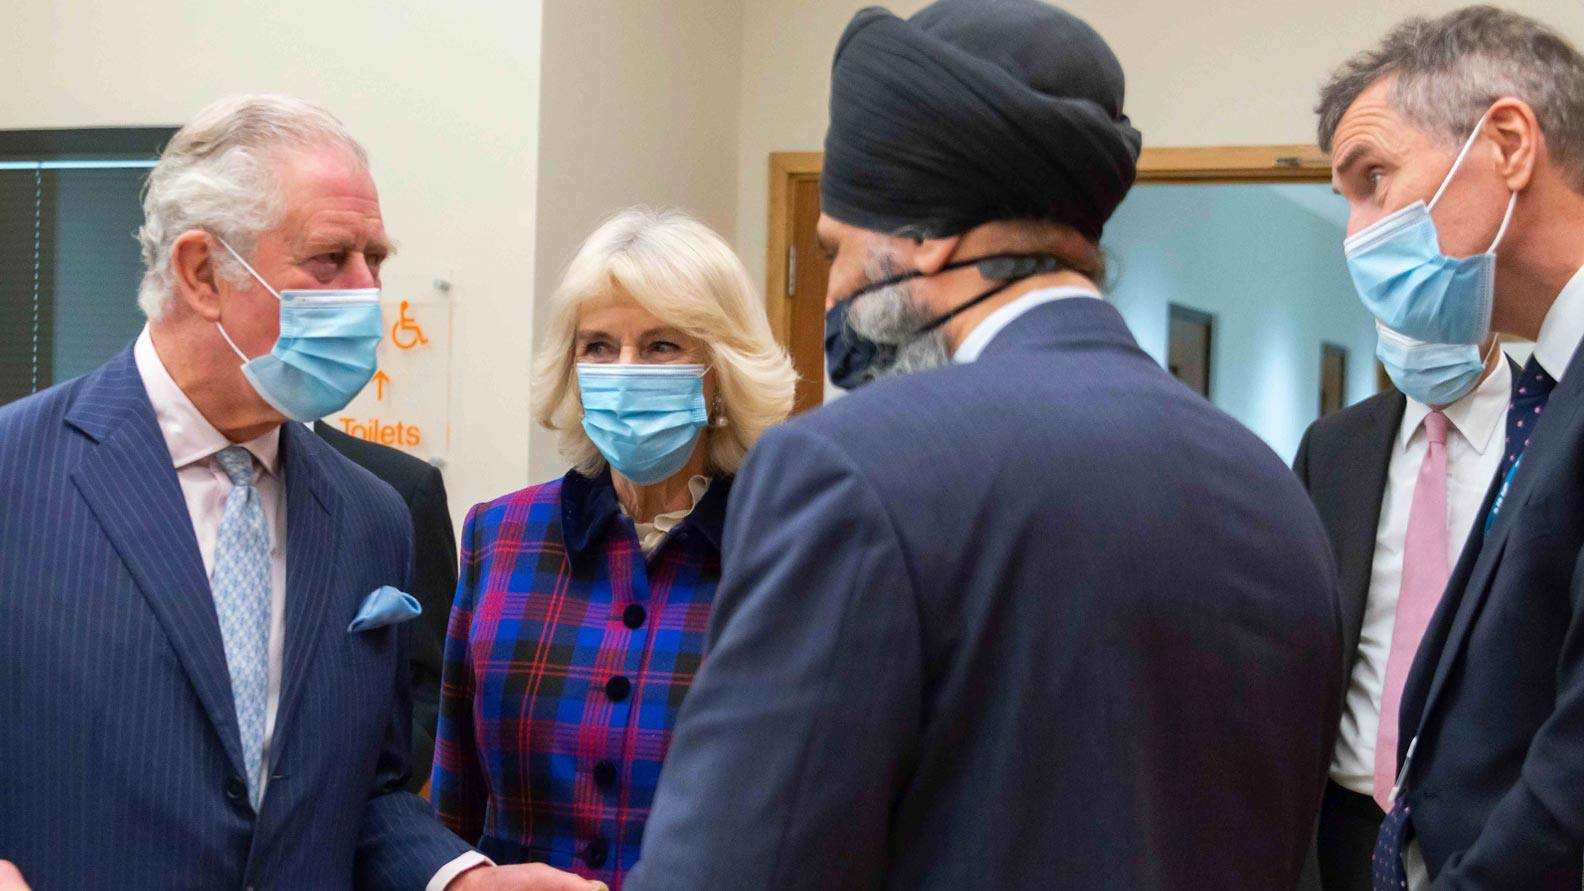 Medical staff and their Royal Highnesses The Prince of Wales and The Duchess of Cornwall